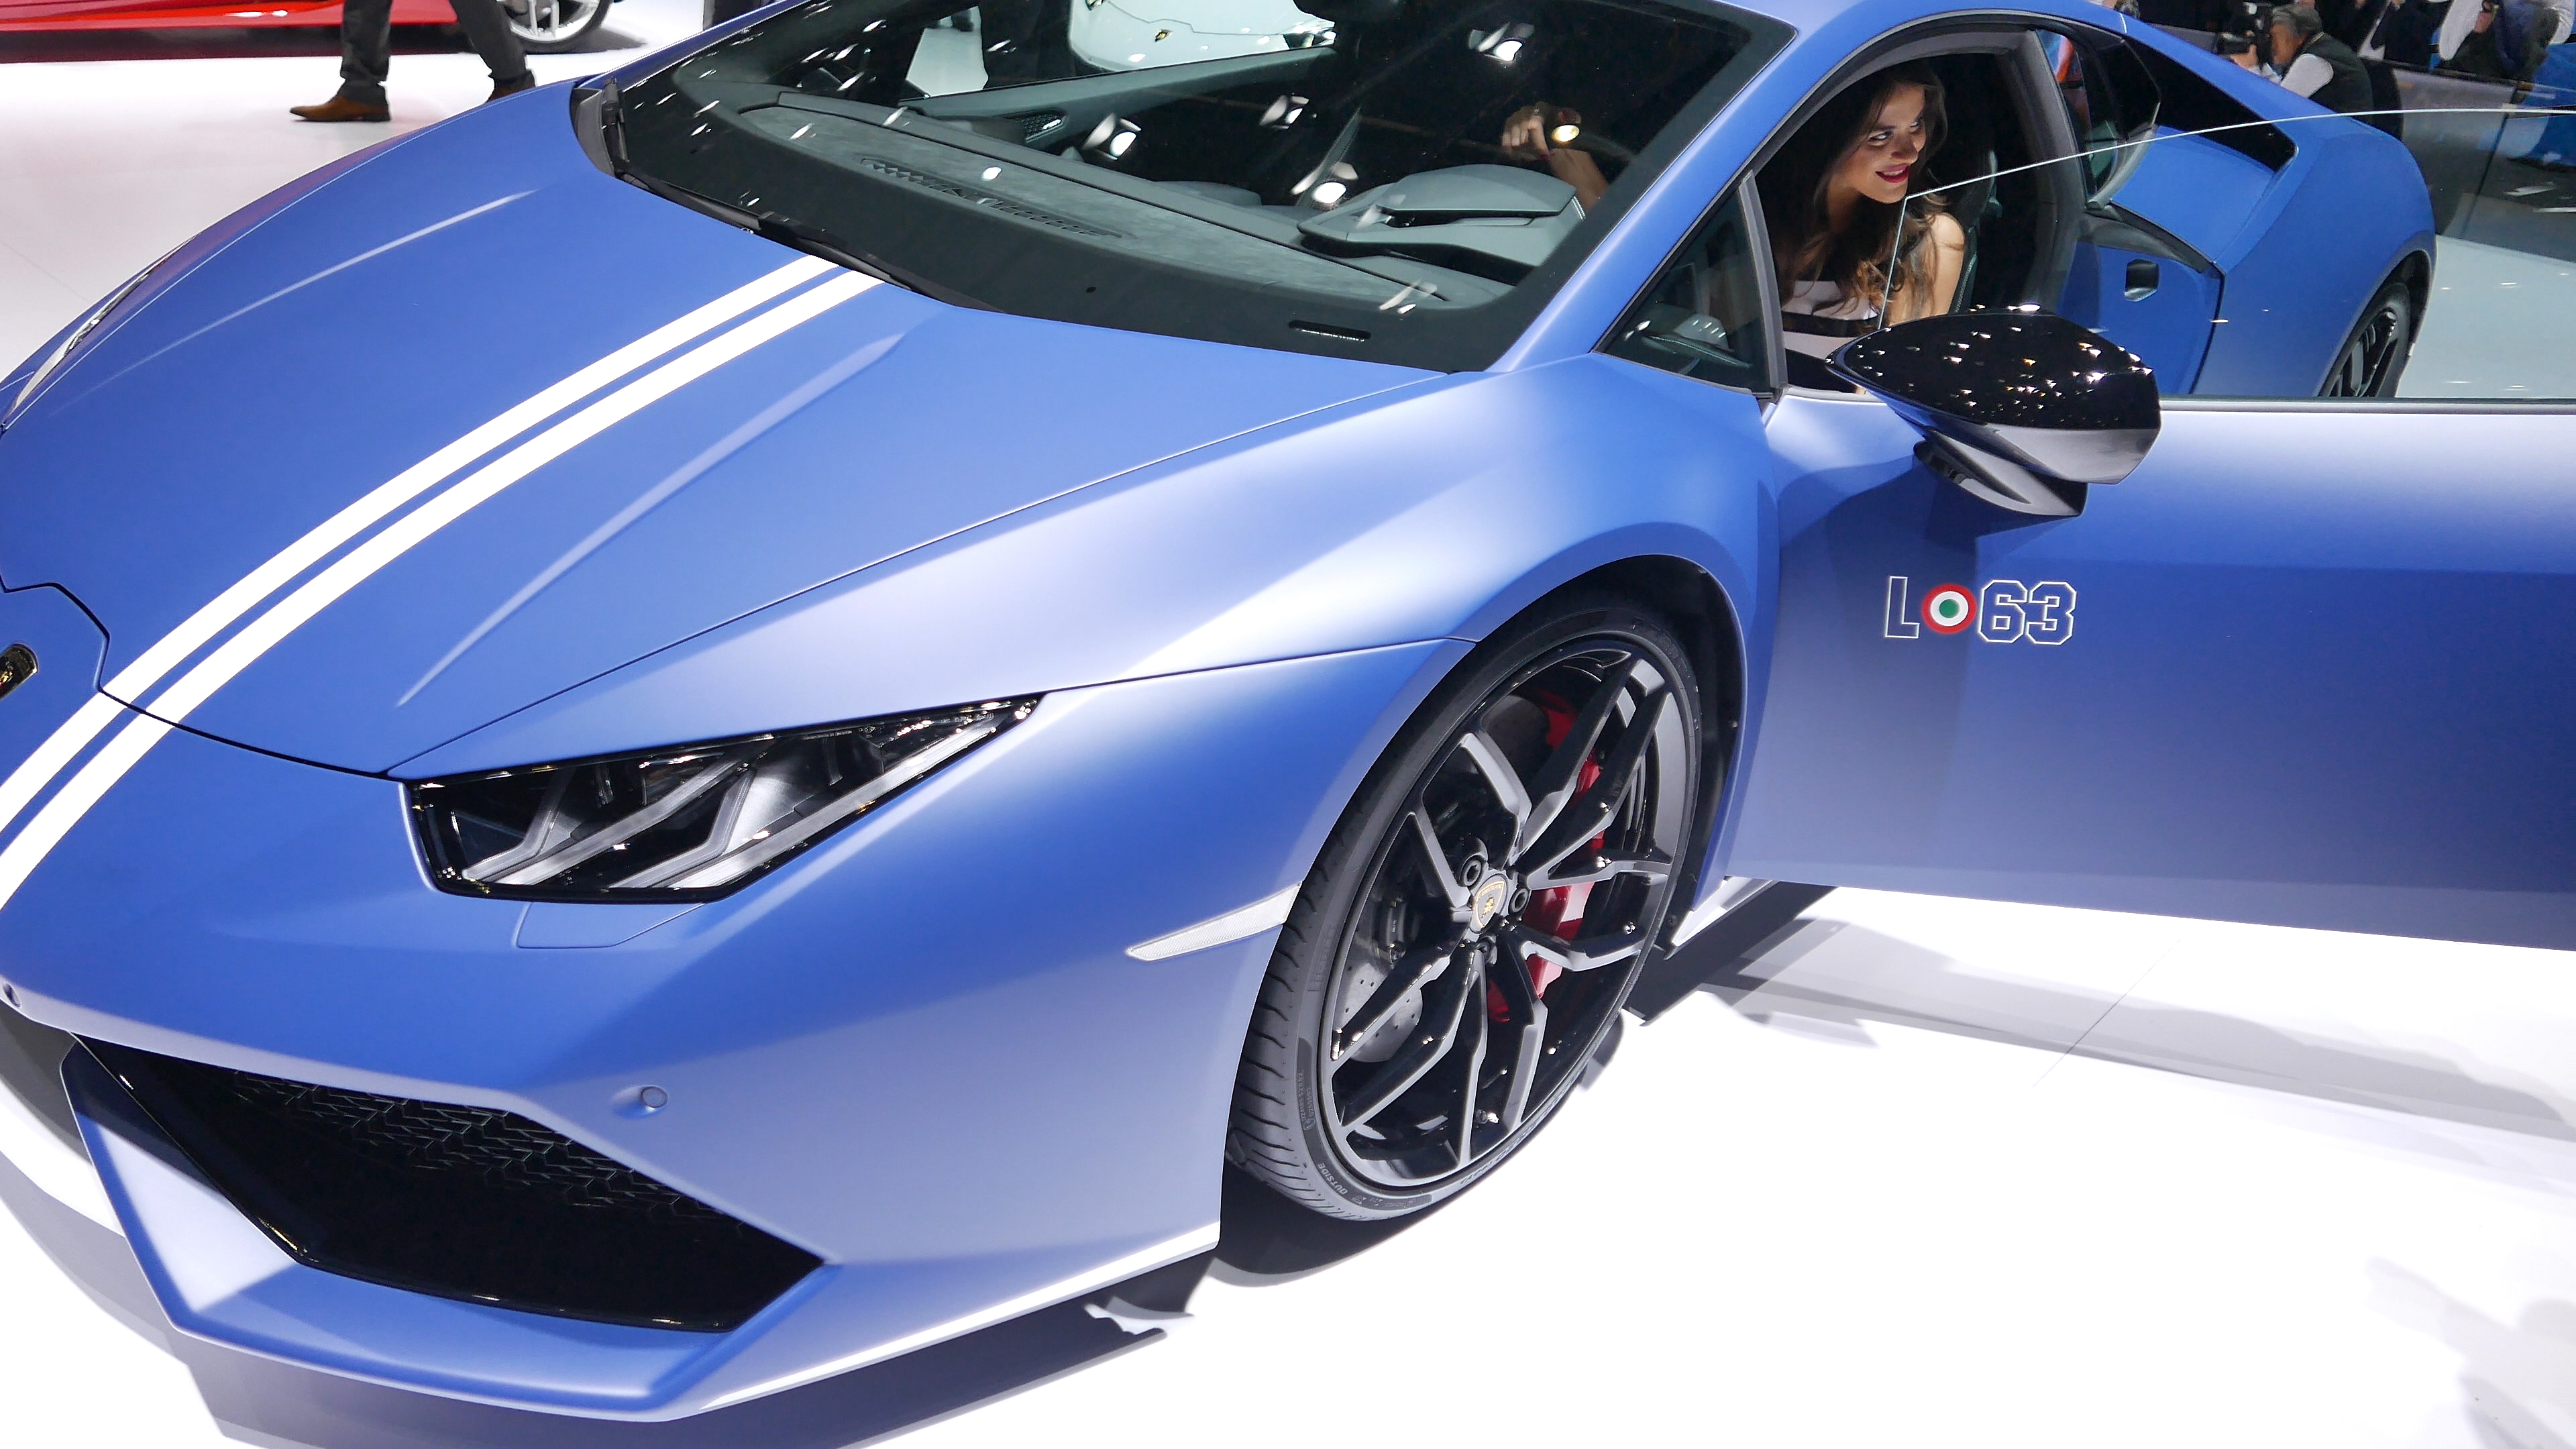 Huracan lp 610-4 avio photo